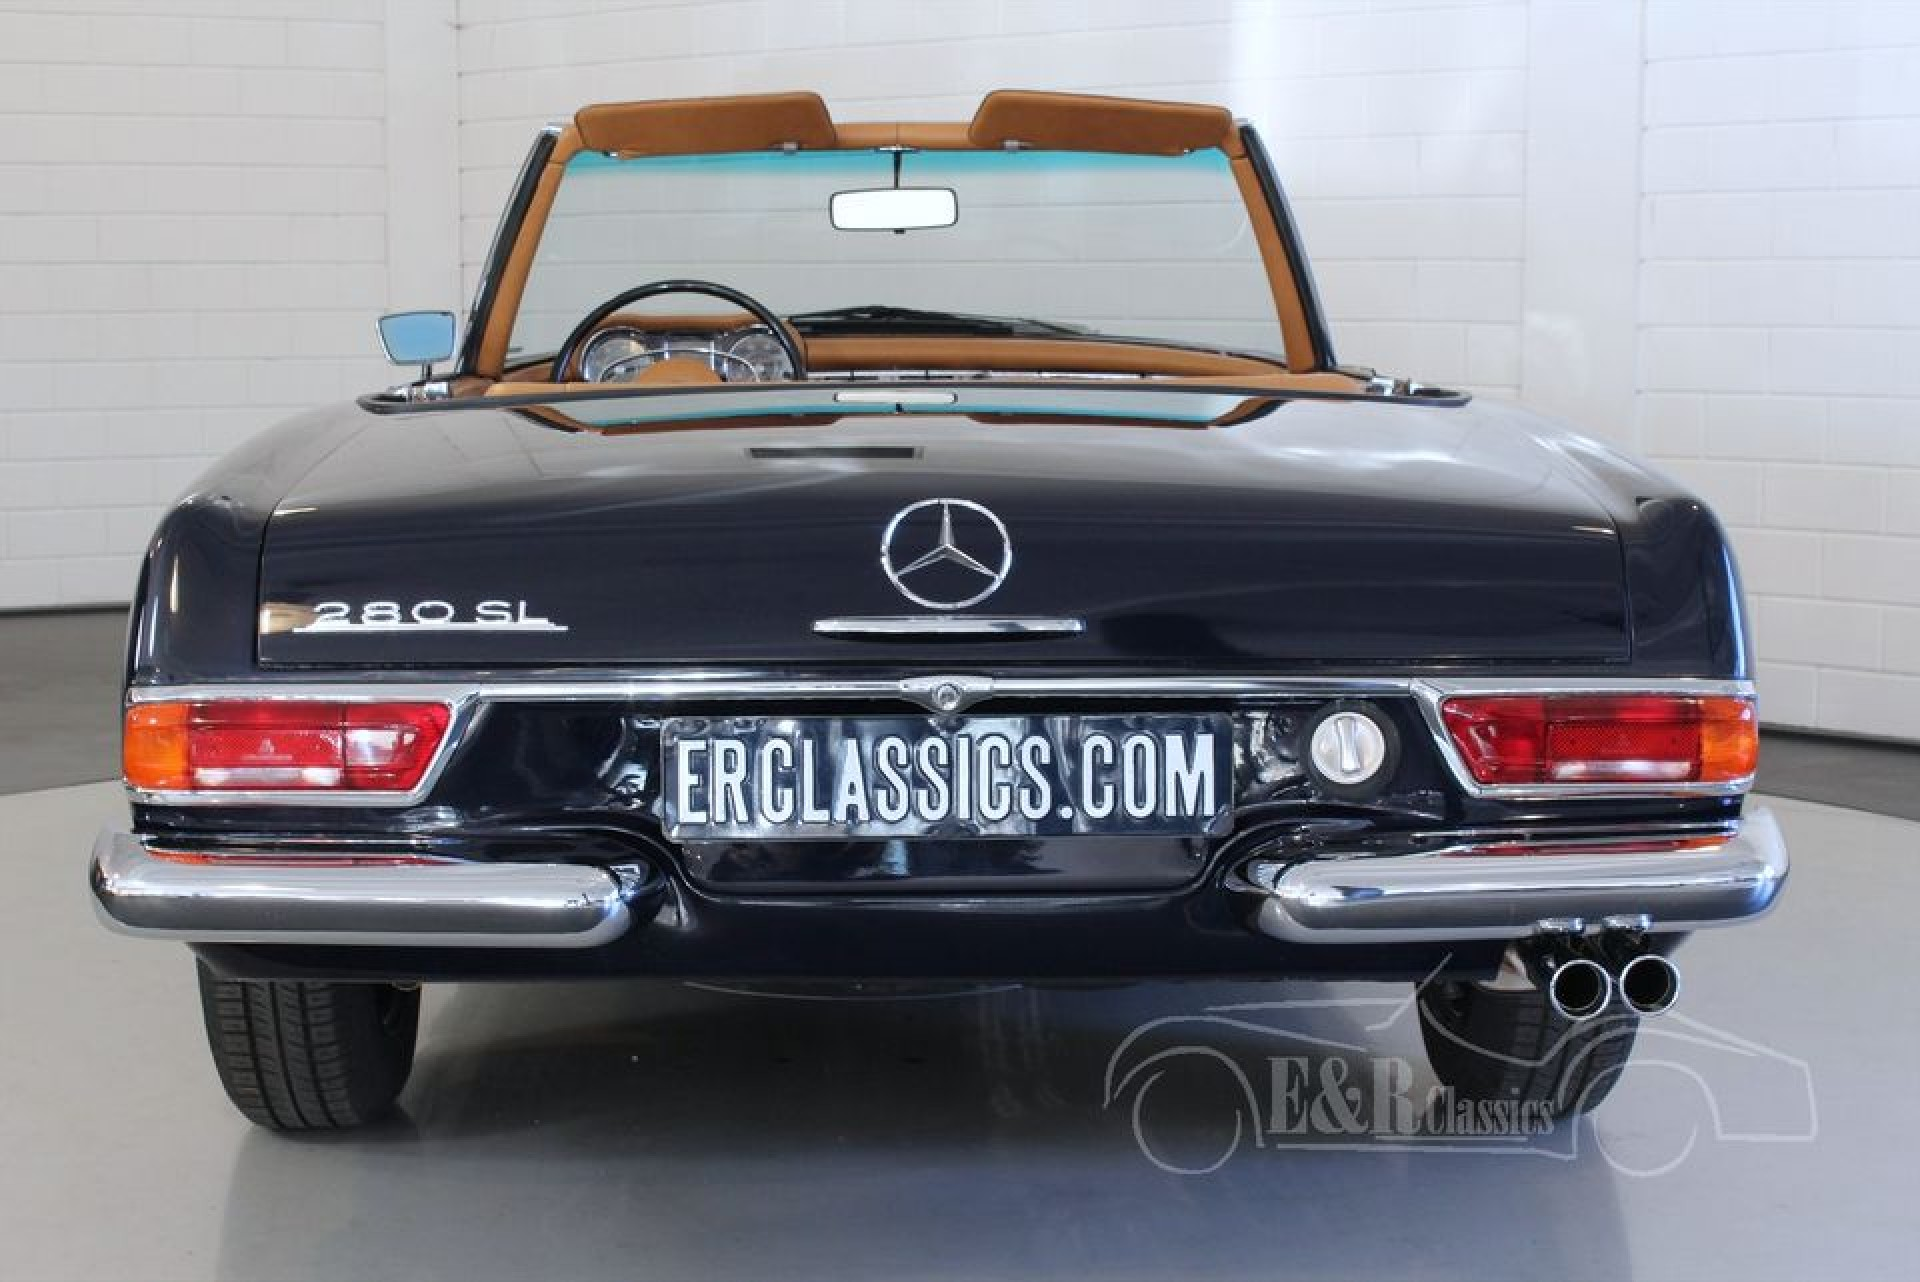 mercedes benz 280 sl pagode 1968 zum kauf bei erclassics. Black Bedroom Furniture Sets. Home Design Ideas